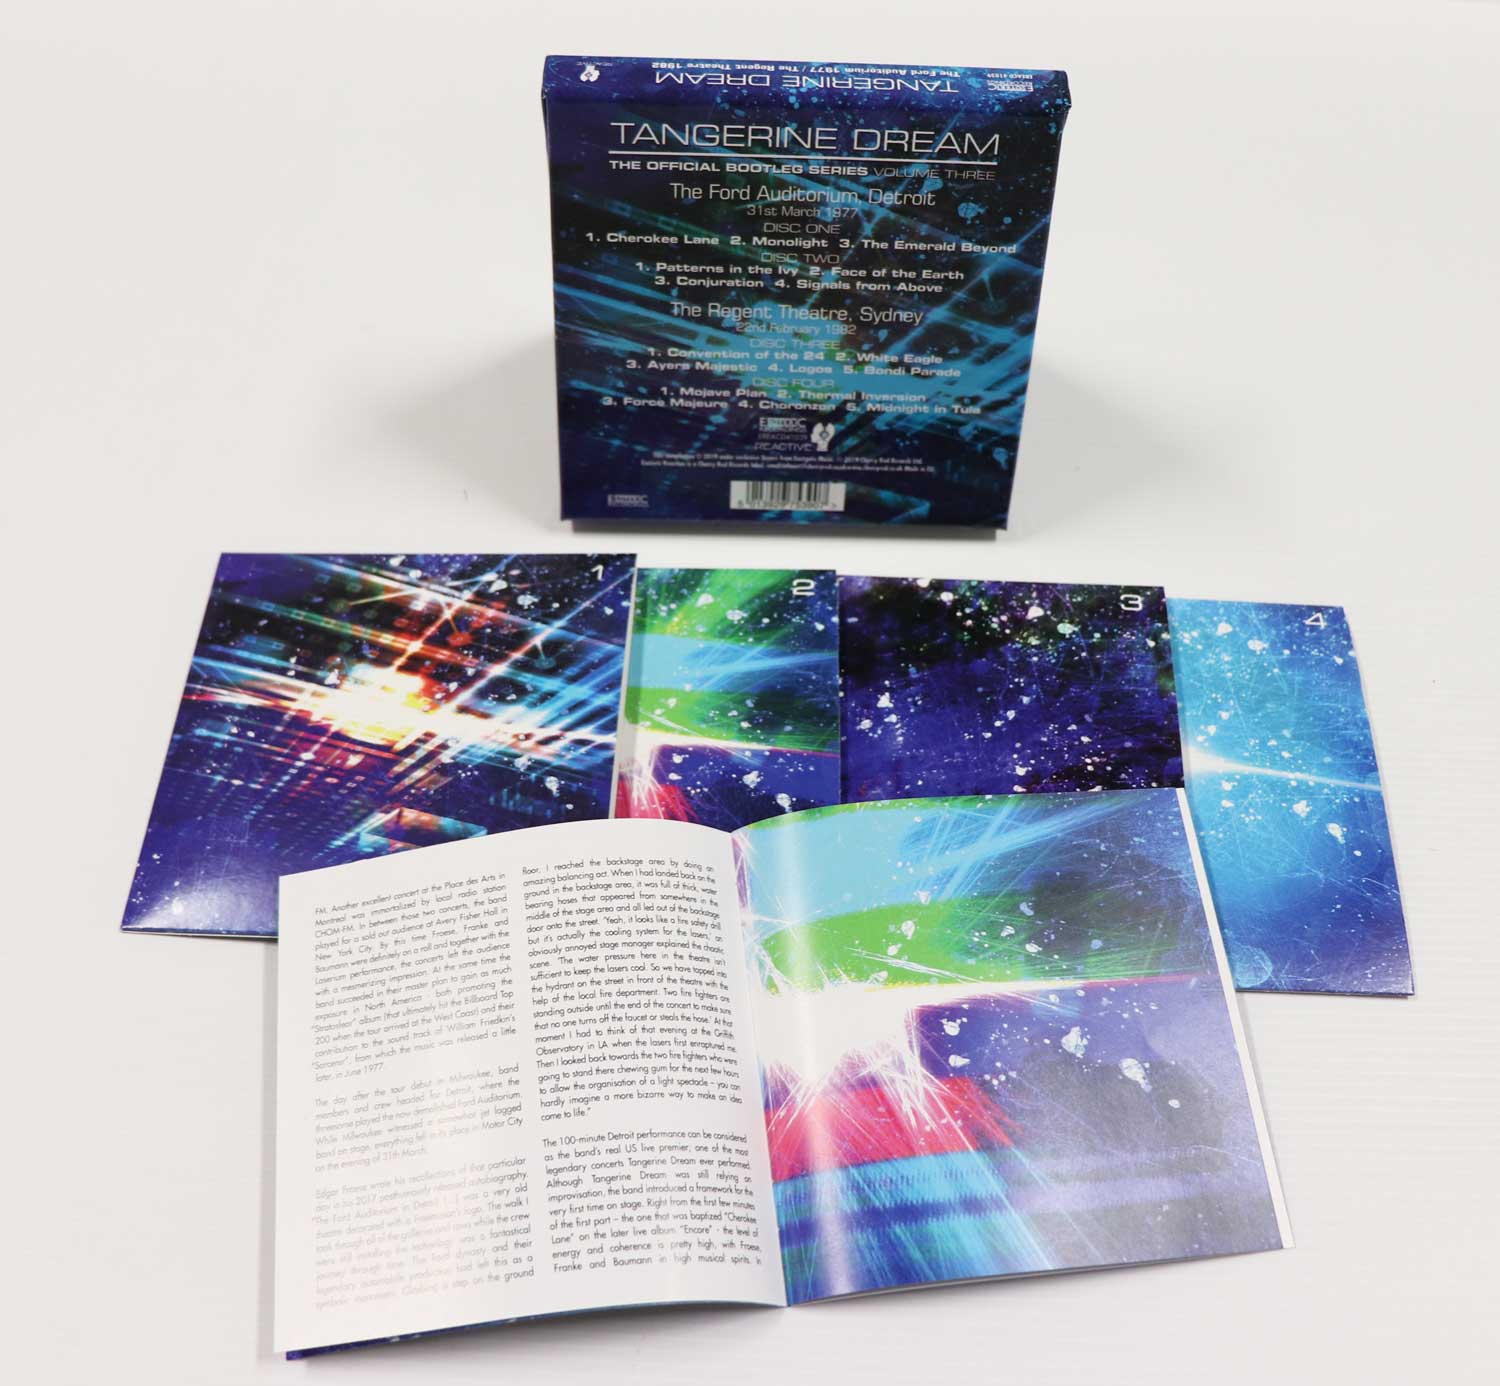 Tangerine Dream: The Official Bootleg Series Volume Three, 4CD Remastered  Boxset